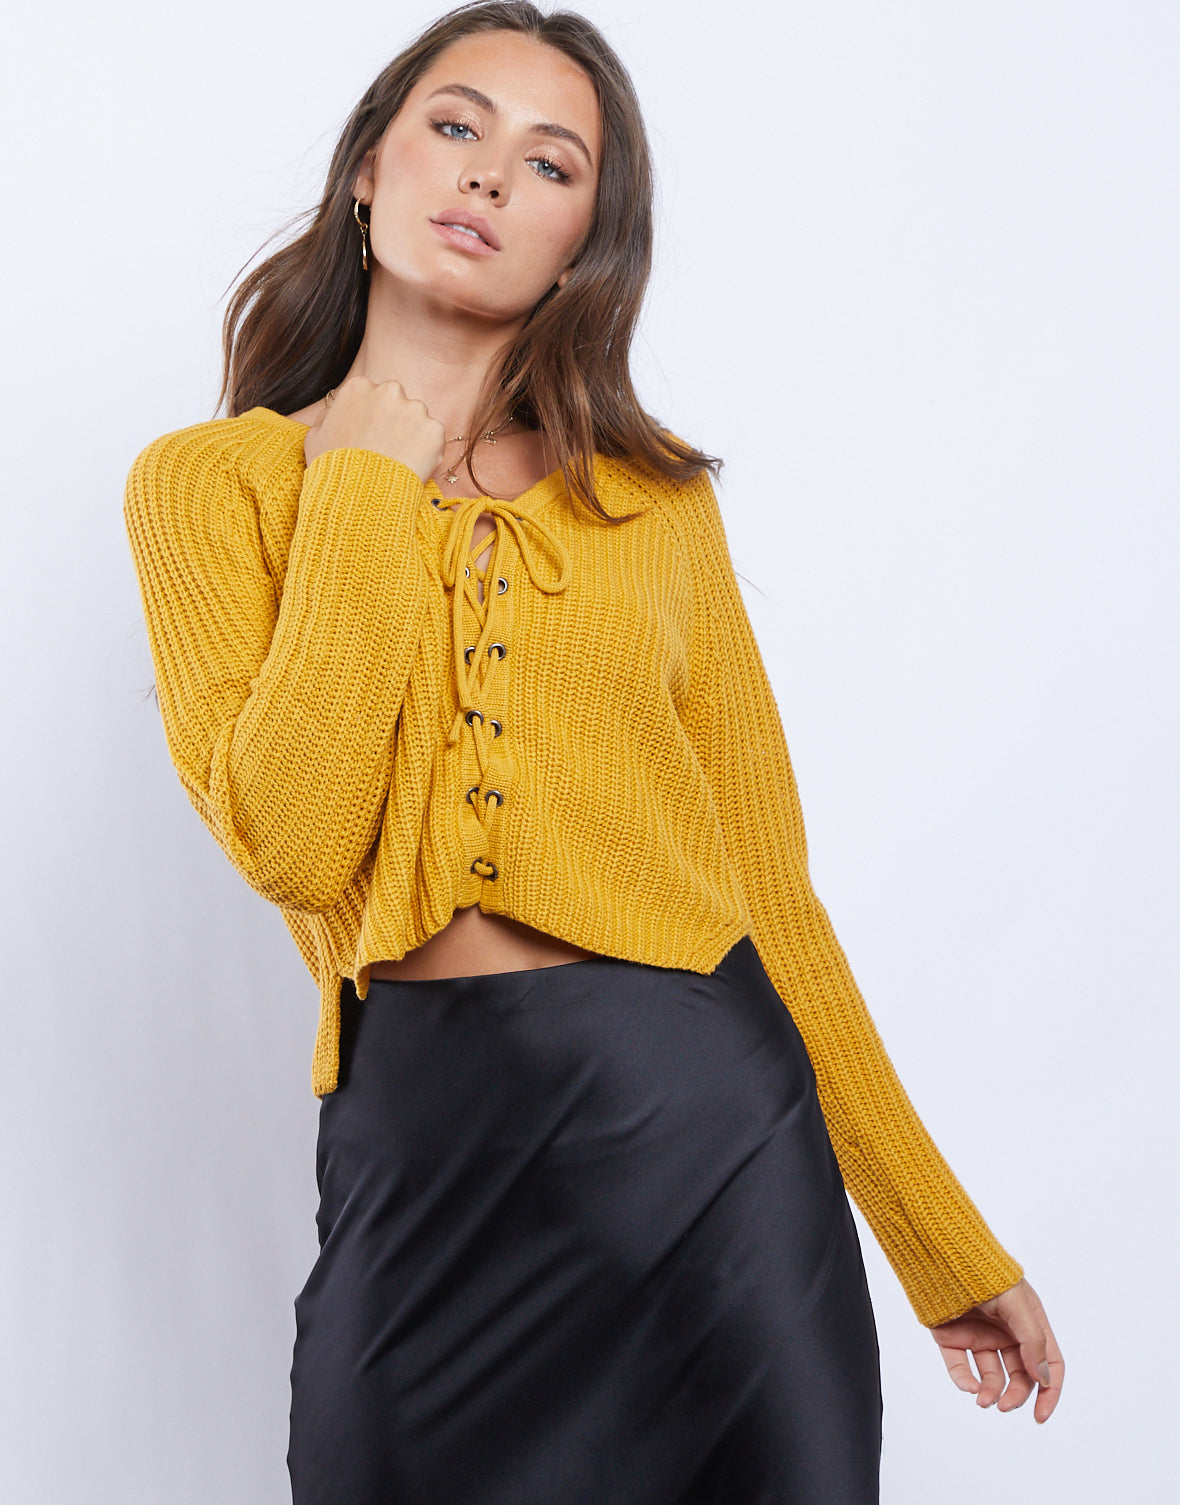 Desert Dreaming Lace Up Sweater